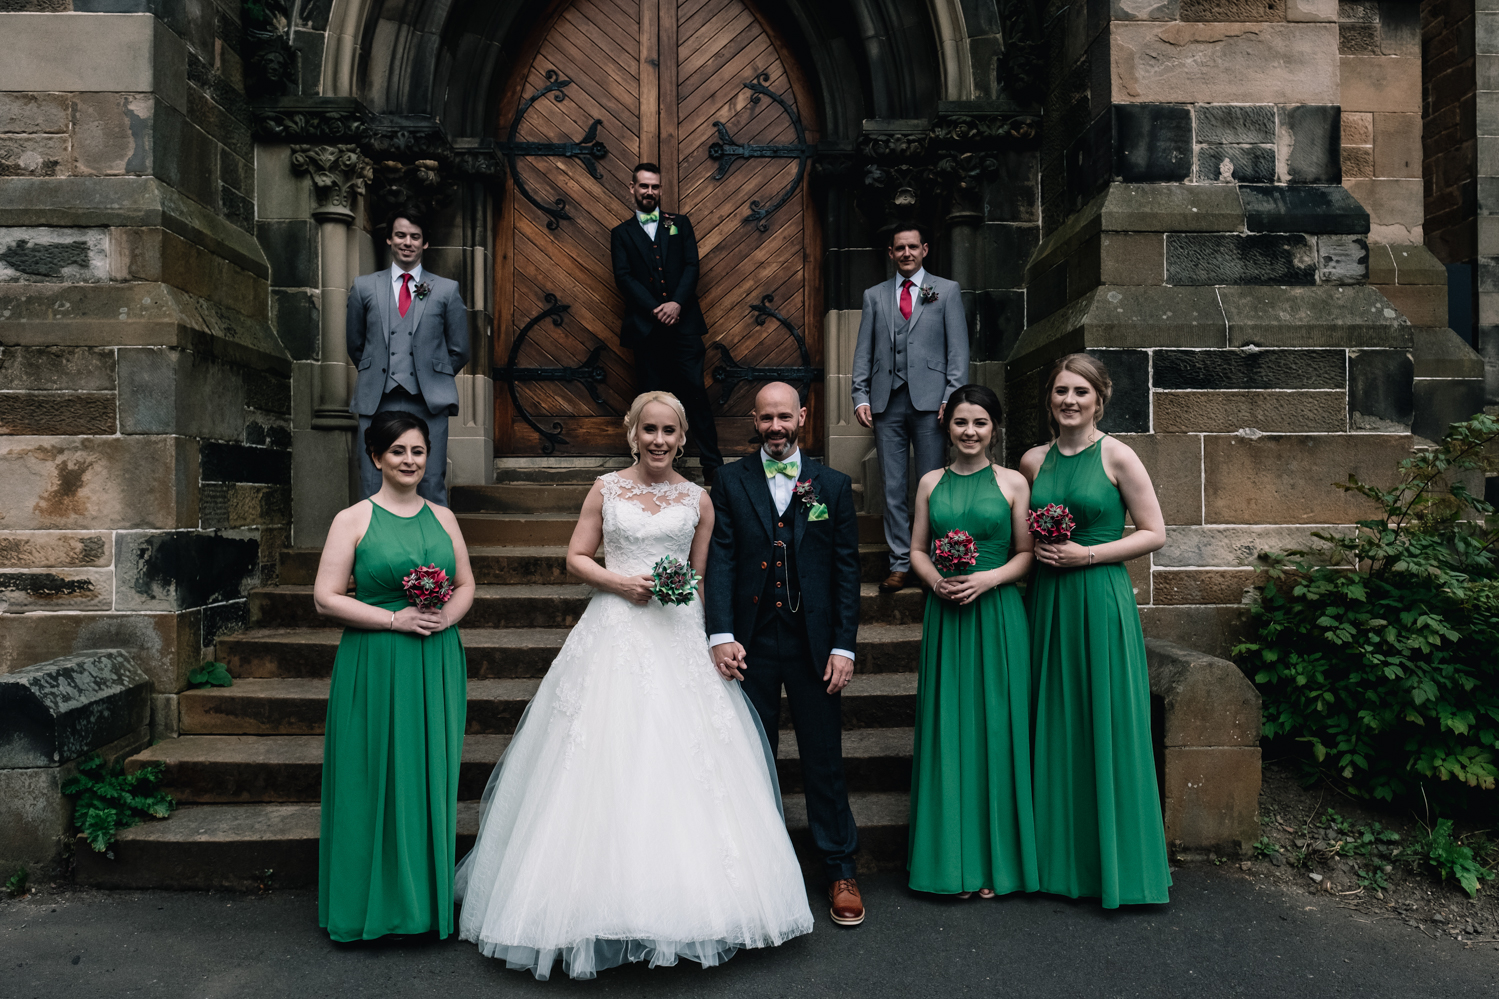 012-Cottiers-wedding-Glasgow-bridal-party.jpg